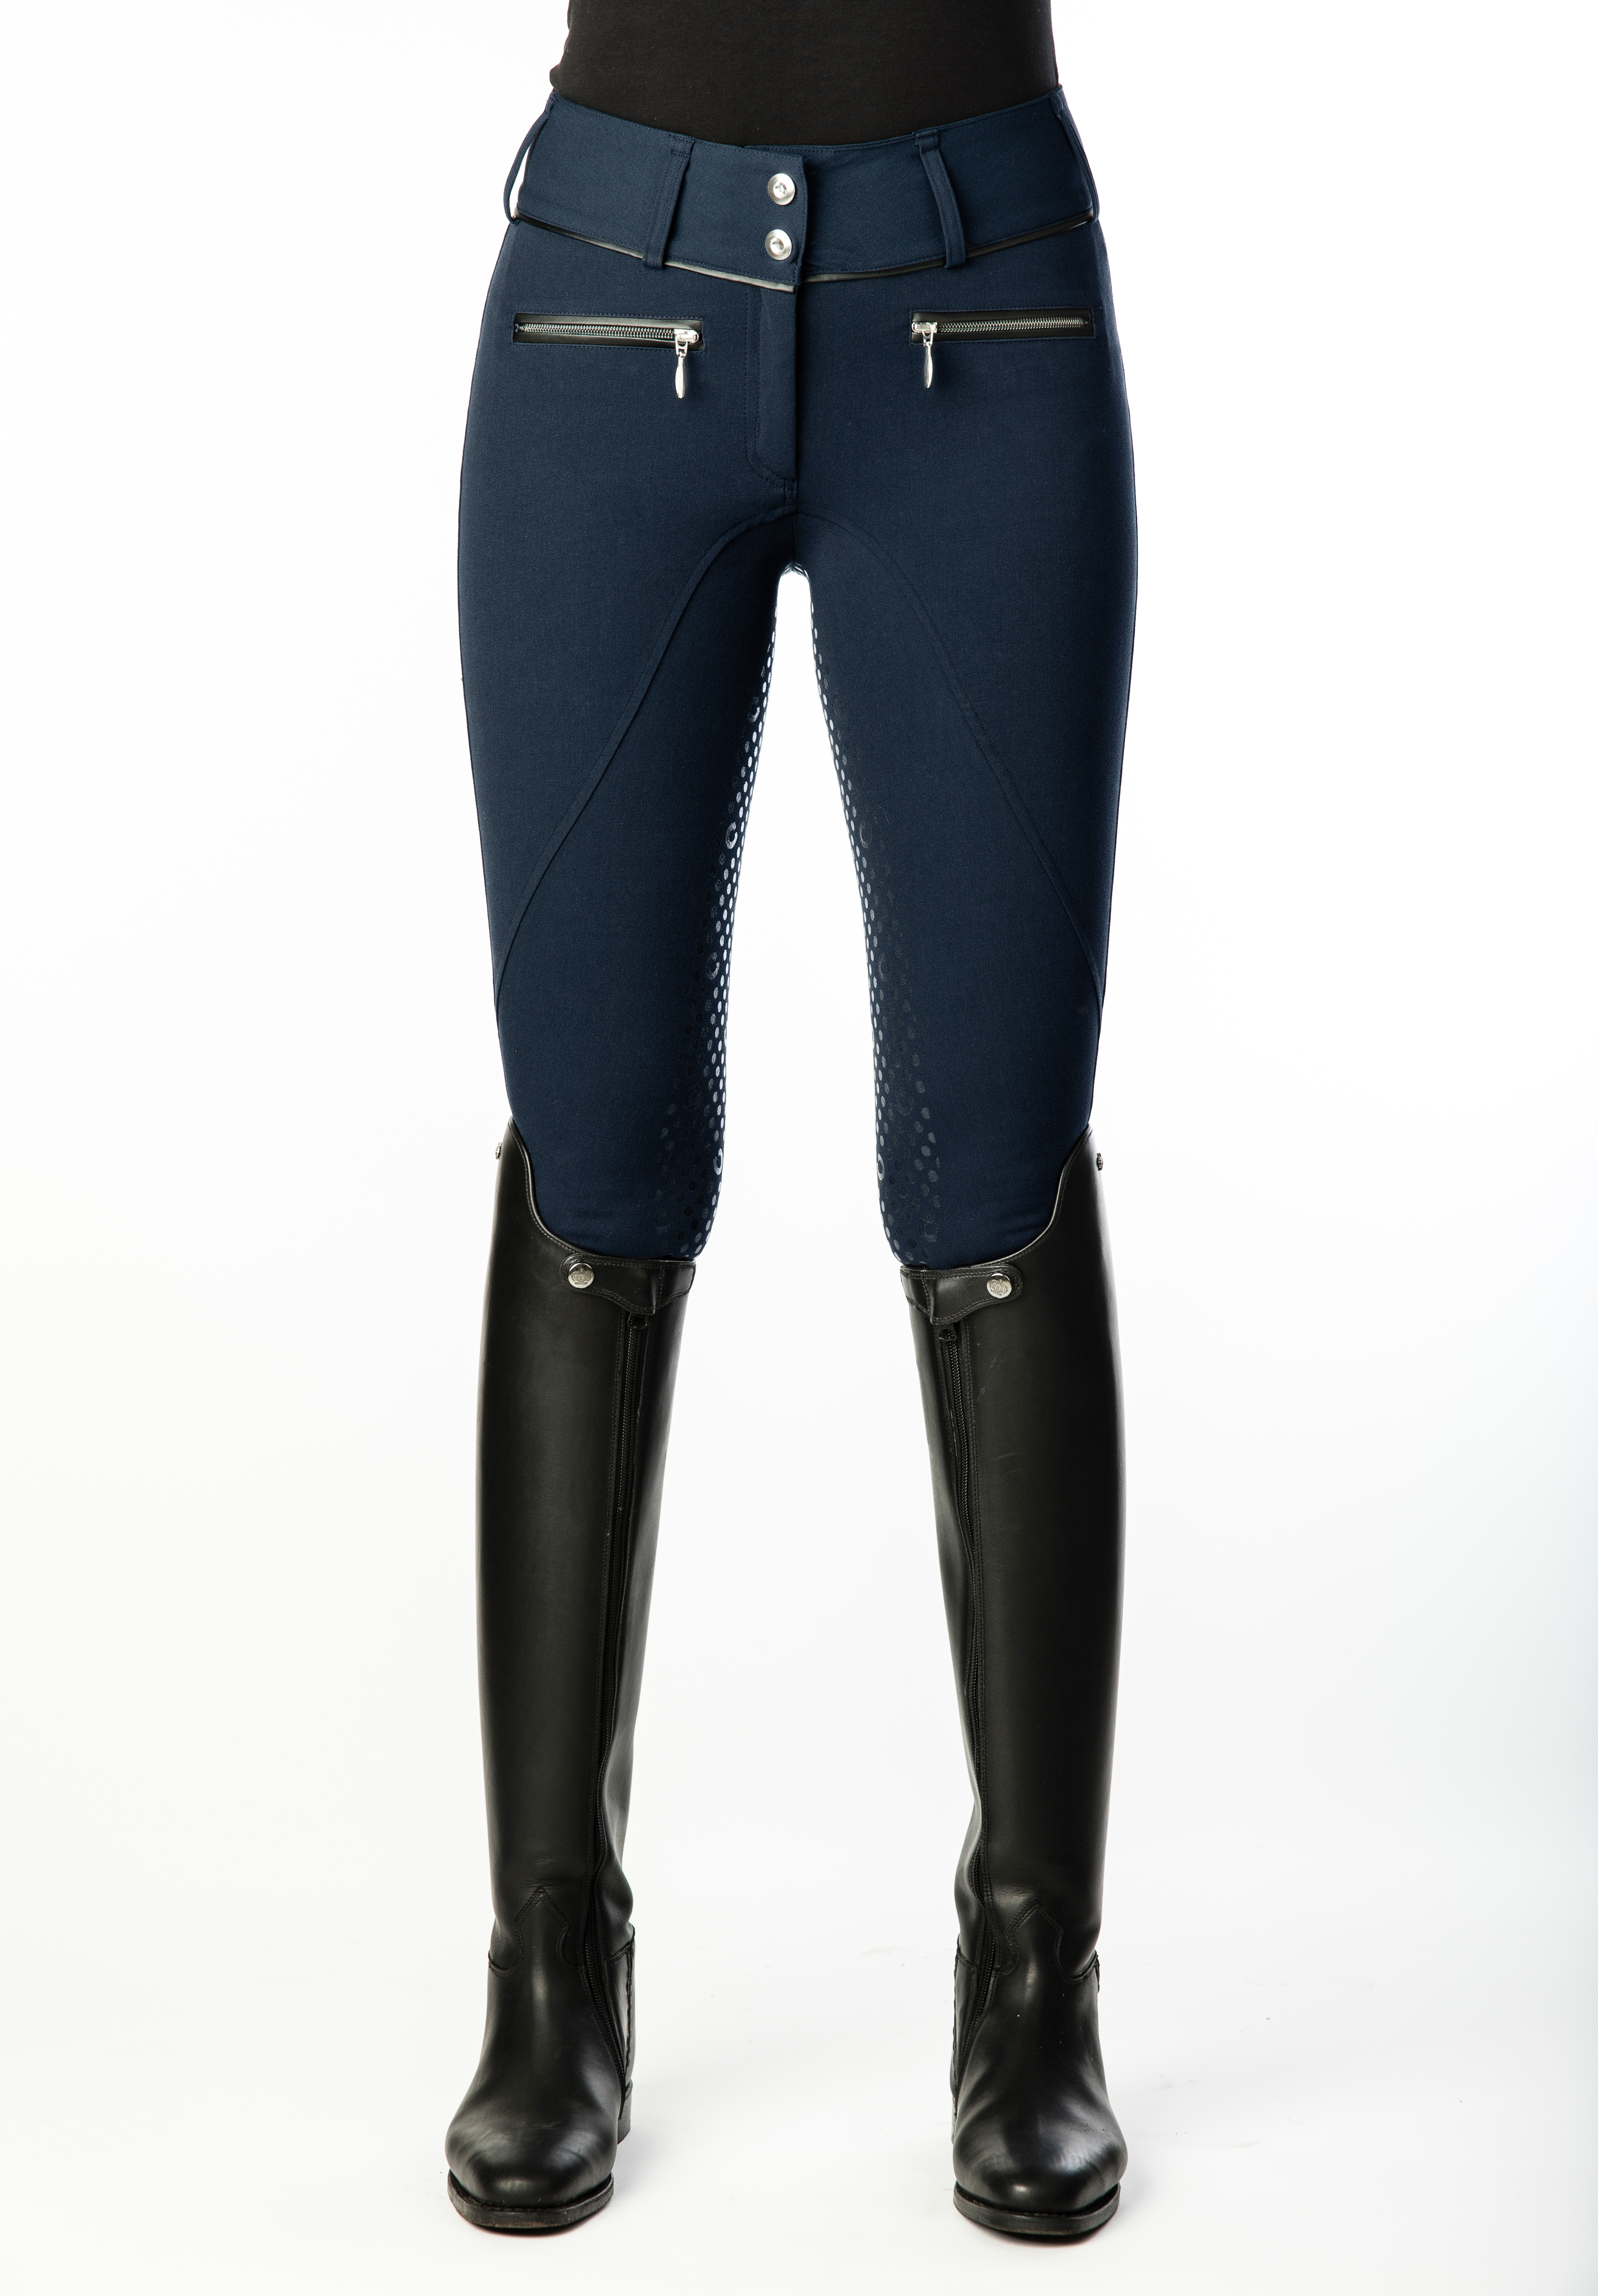 breeches-dressage-front-dark-navy.jpg